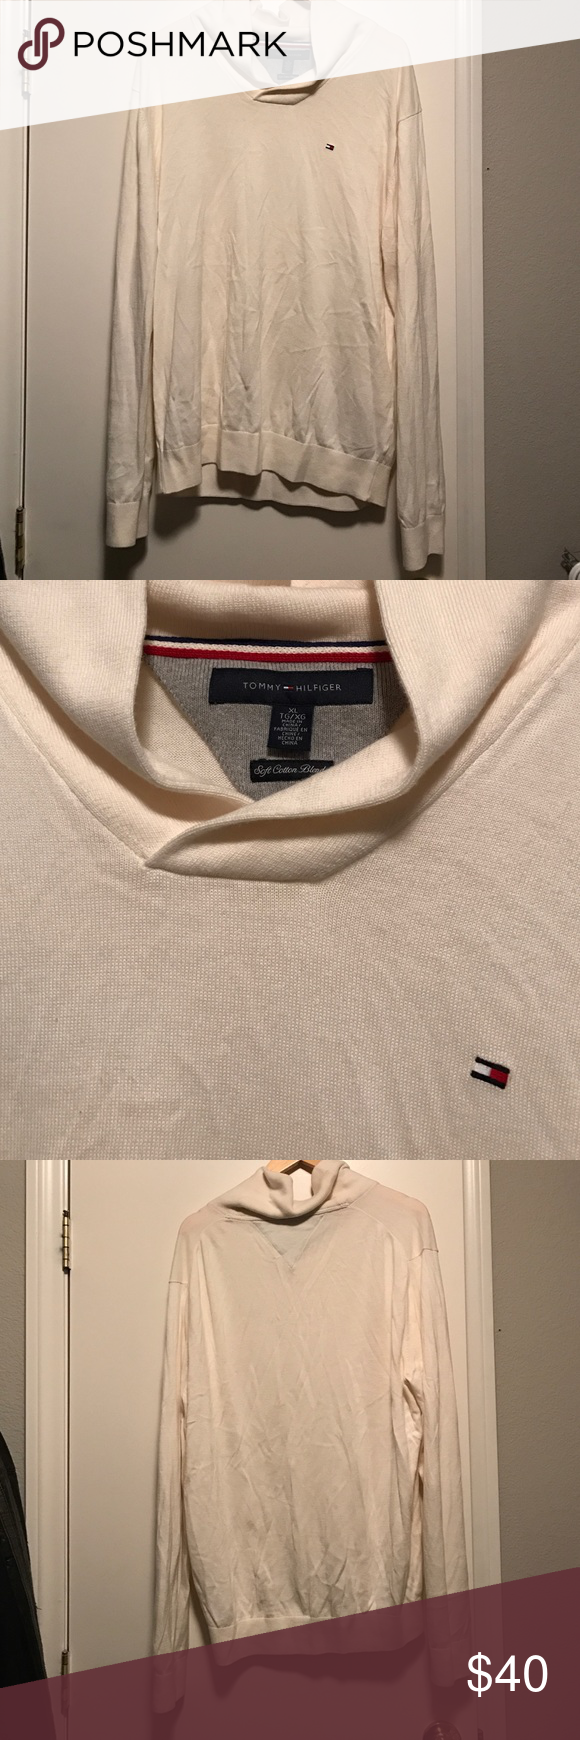 Tommy Hilfiger sweater Great condition, soft cotton blend Tommy Hilfiger Sweaters Turtleneck